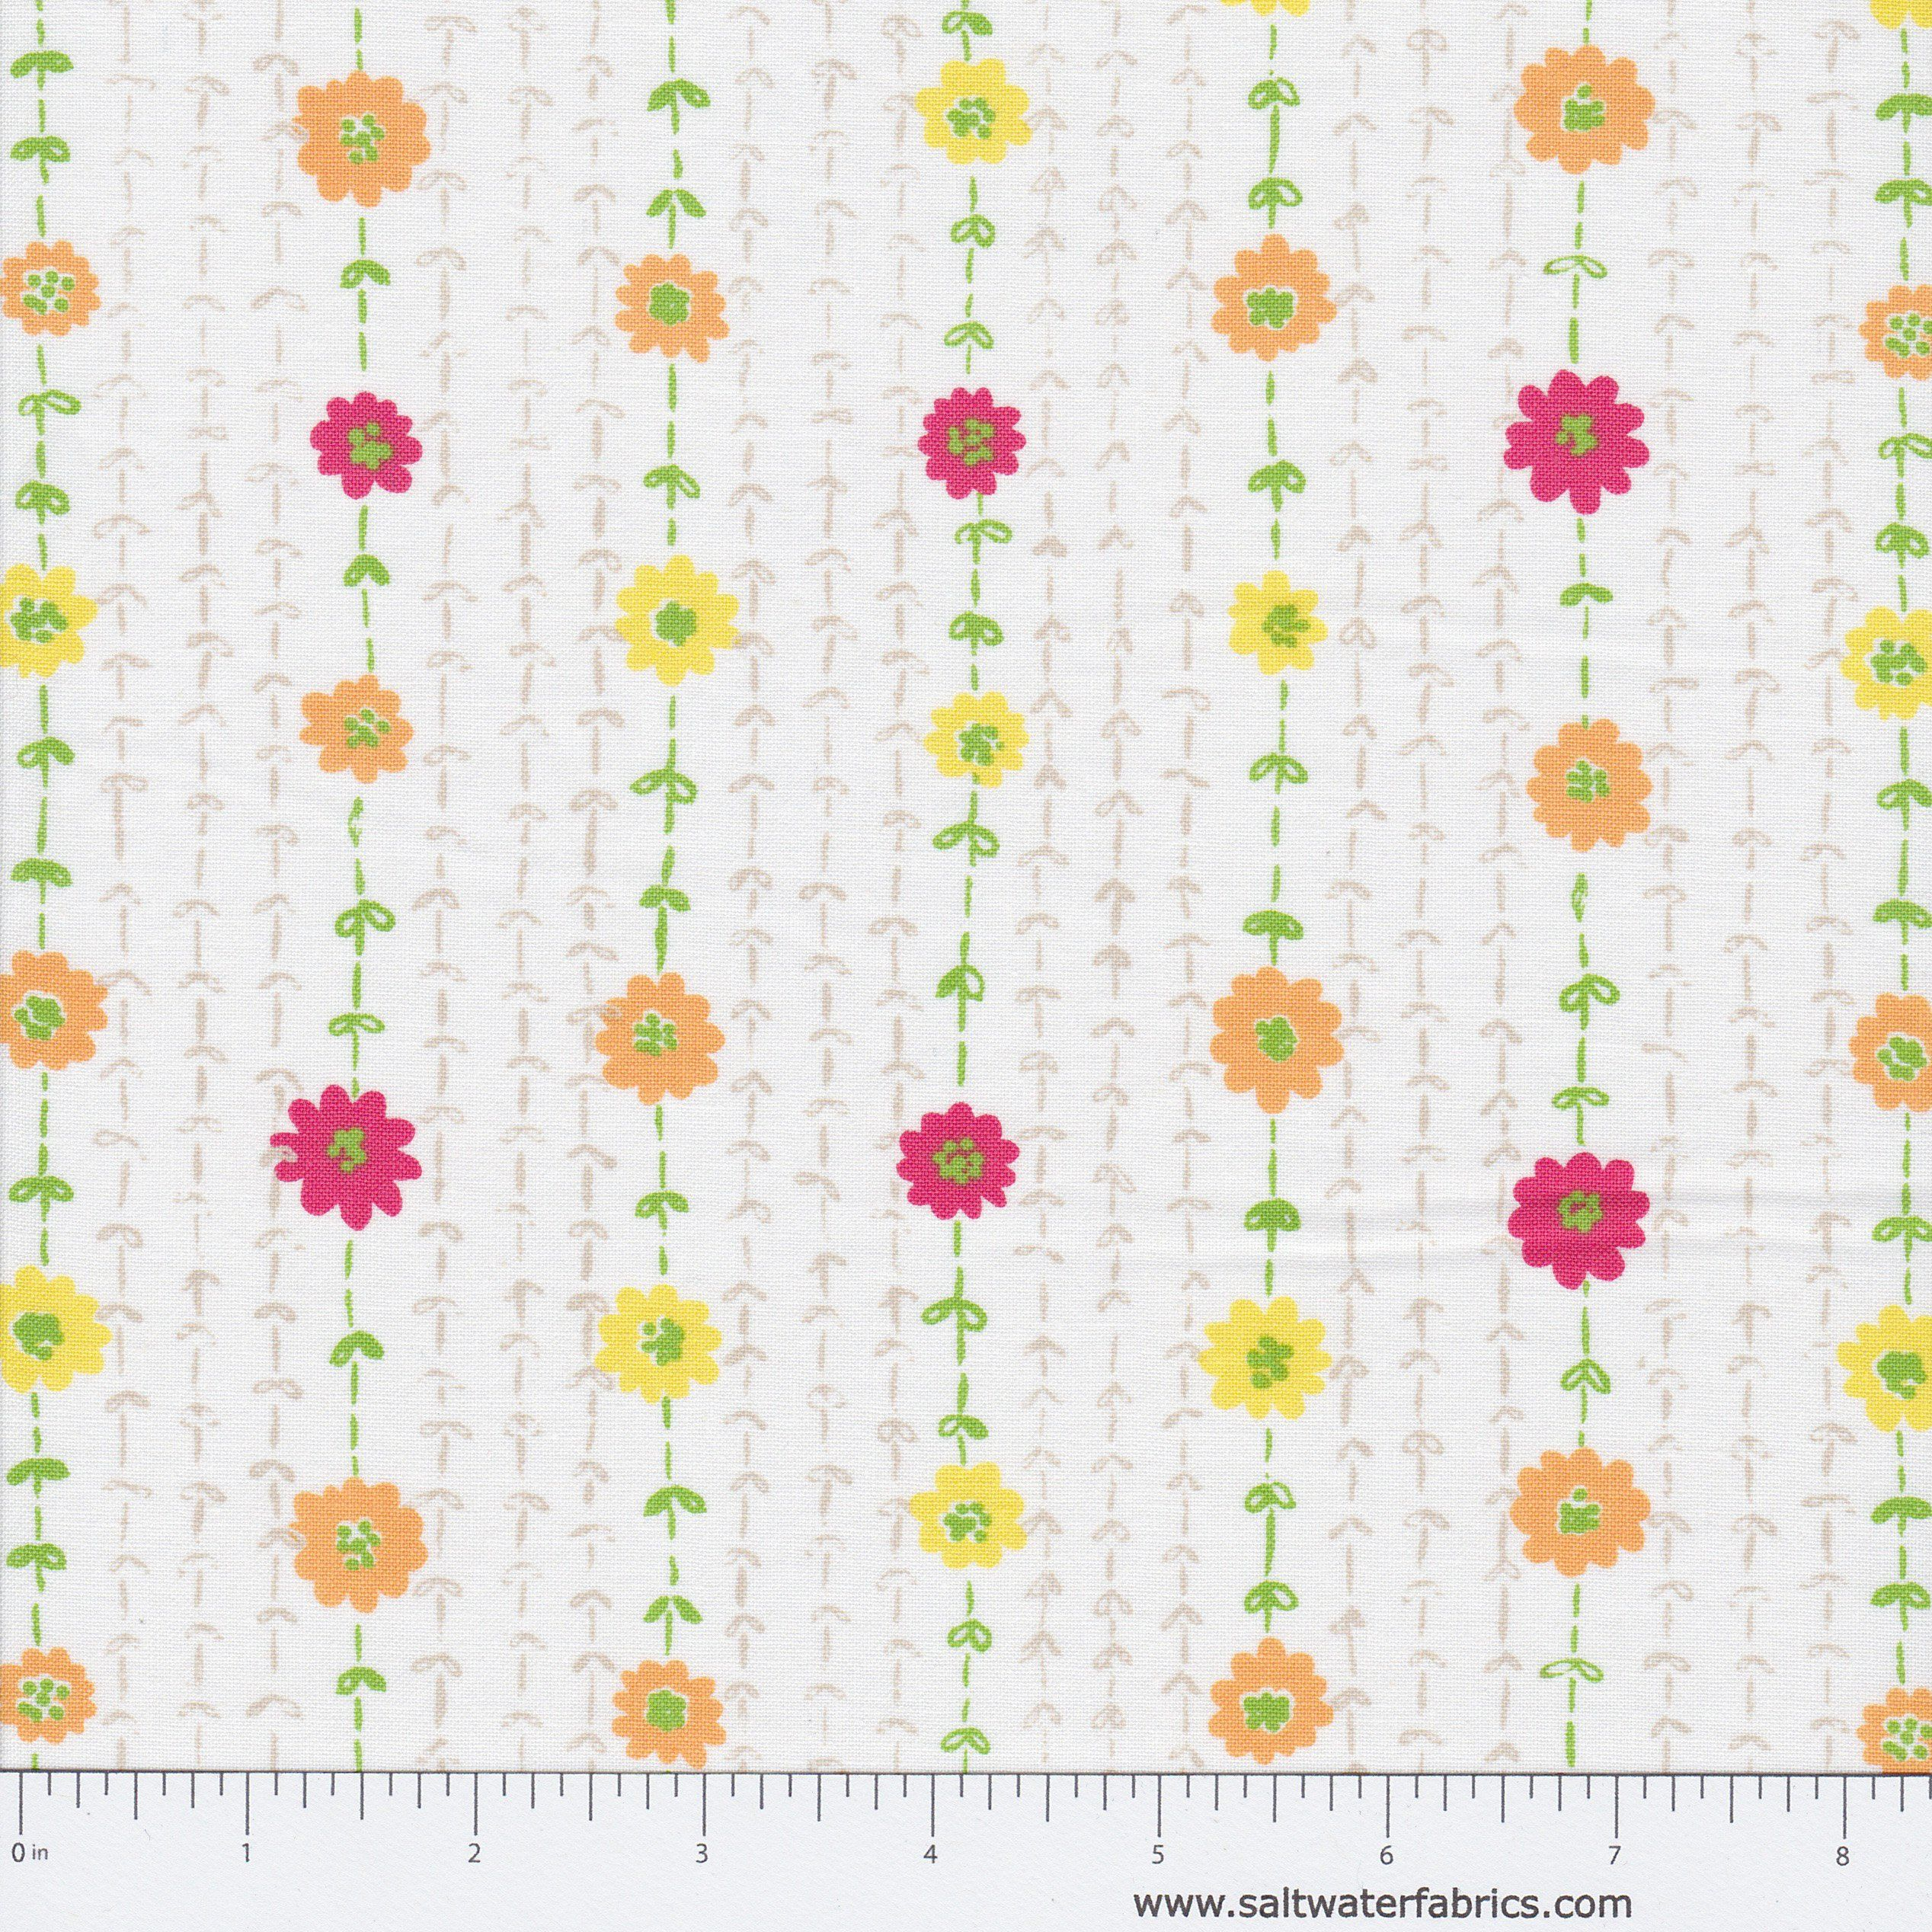 c040152ff2fc8 Savannah - Floral Stitch in White   Products   Savannah chat, Floral ...